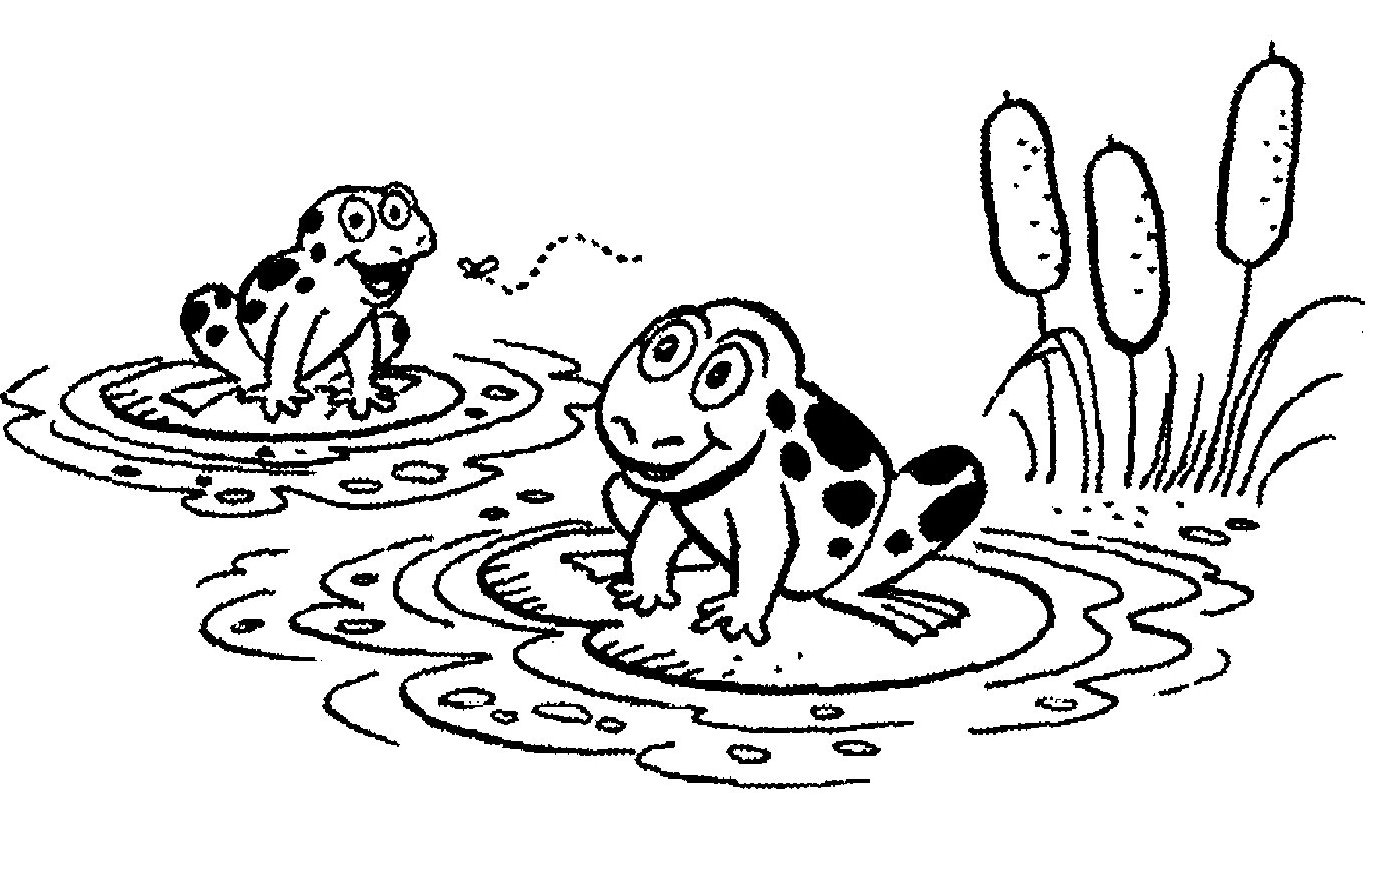 Free Pictures Of Frogs On Lily Pads Download Free Clip